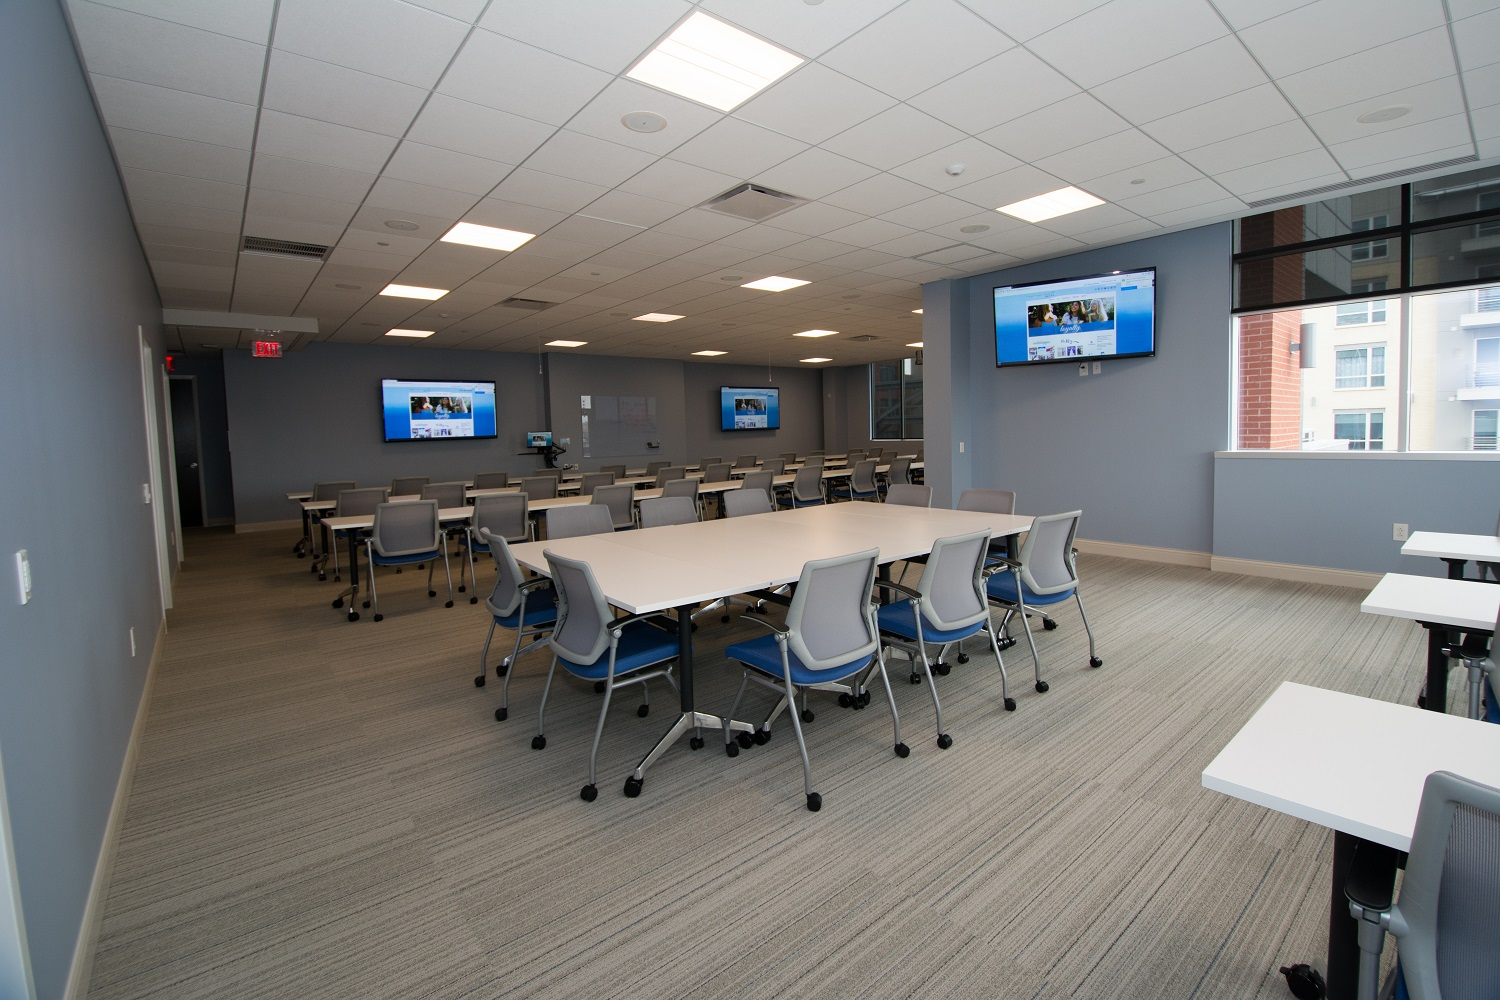 With seating for 50+, this training room offers complex audio, visual, and recording functions. New technology systems include an interactive, wireless presentation system; a video streaming and recording system; three large TV screens; hard-button controls, touch-screen controls, and one master control processor.